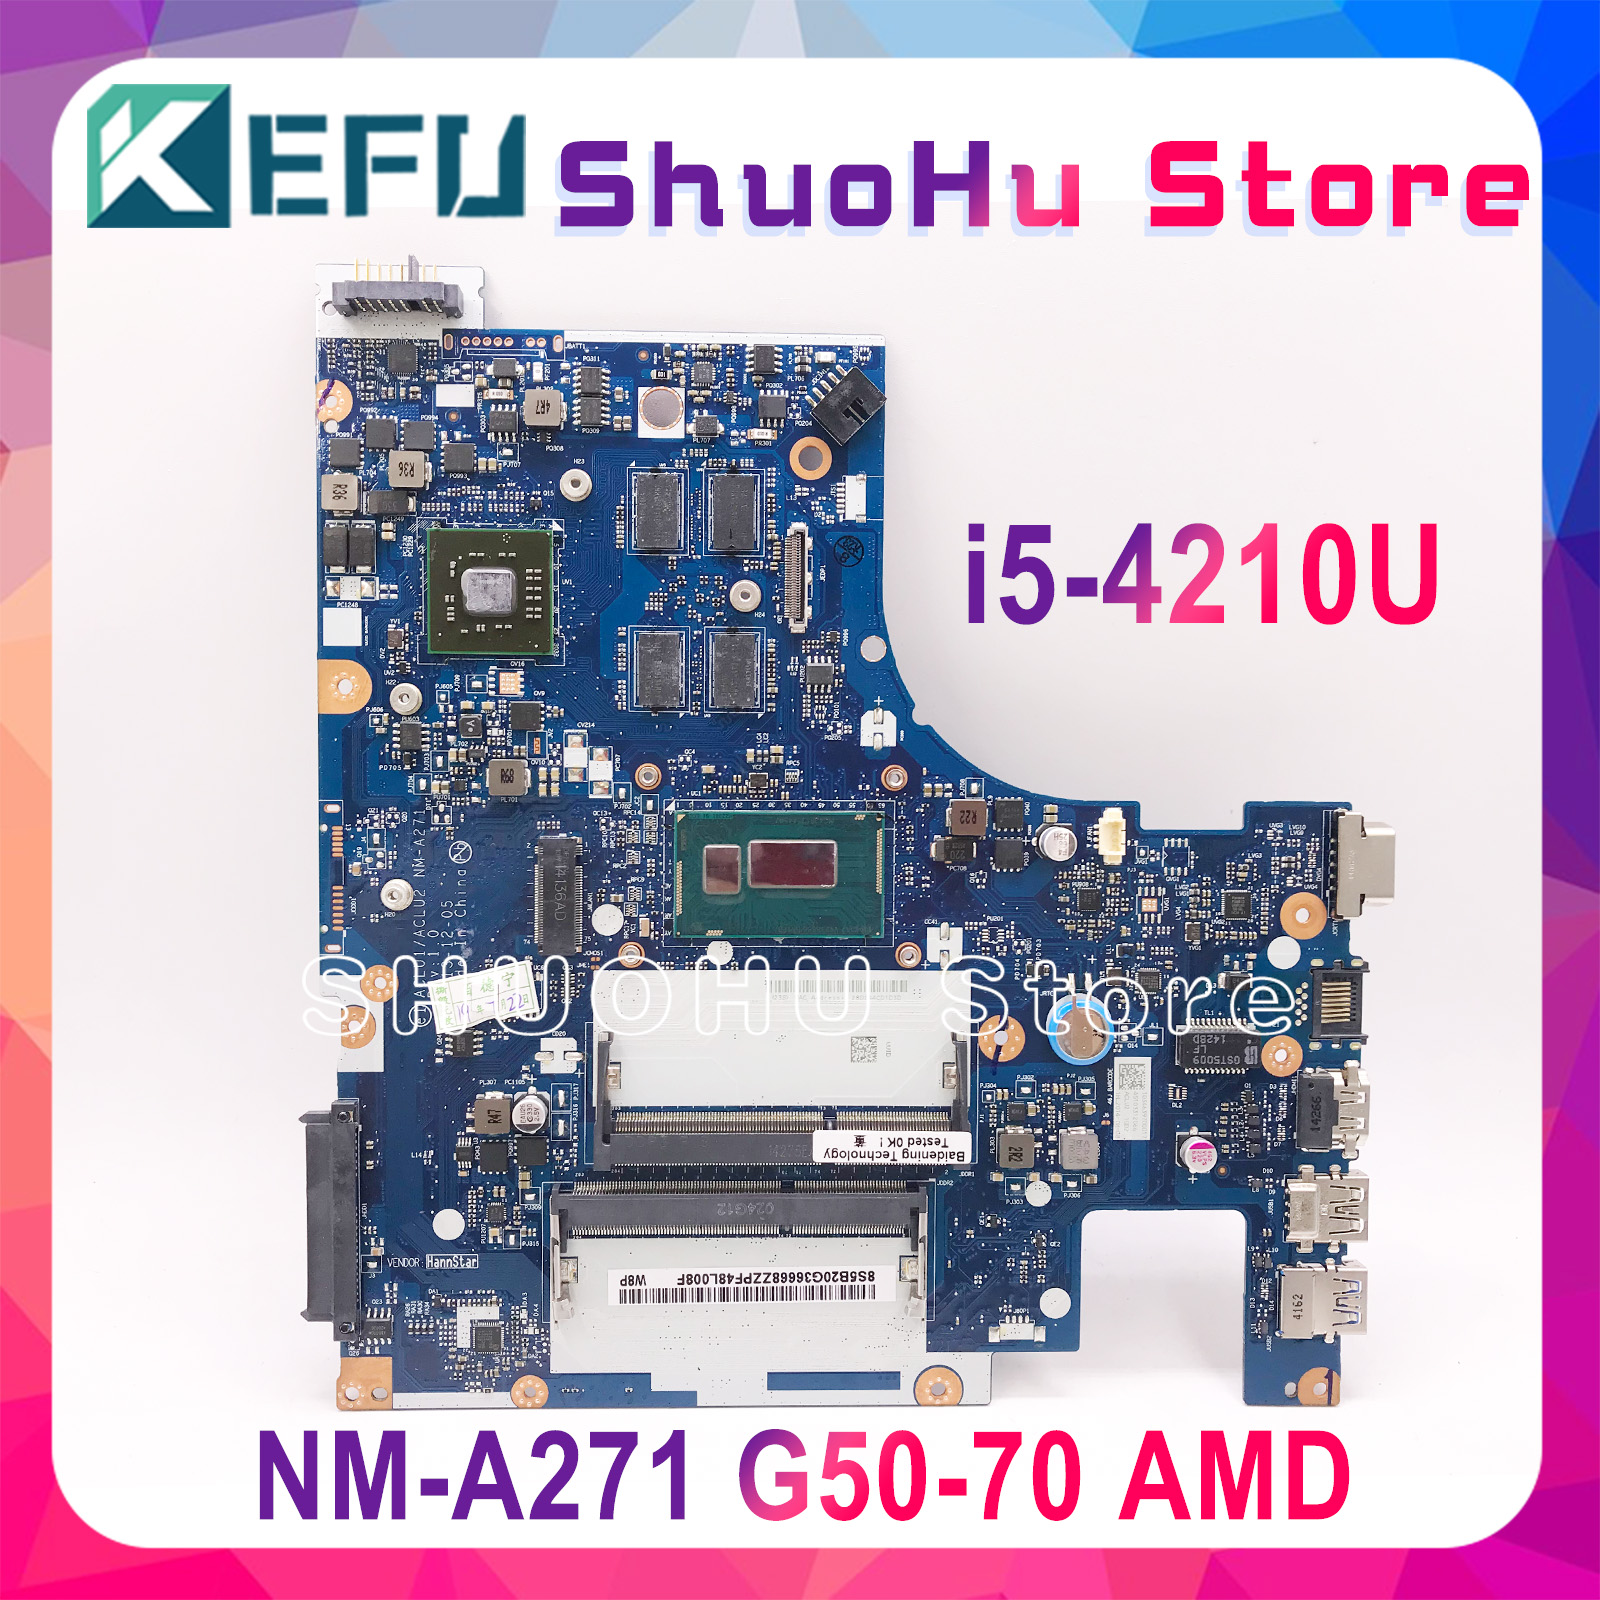 KEFU G50-<font><b>70</b></font> For <font><b>Lenovo</b></font> G50-<font><b>70</b></font> <font><b>Z50</b></font>-<font><b>70</b></font> g50-70m <font><b>motherboard</b></font> ACLU1/ACLU2 NM-A271 Rev1.0 with AMD graphics card Test image